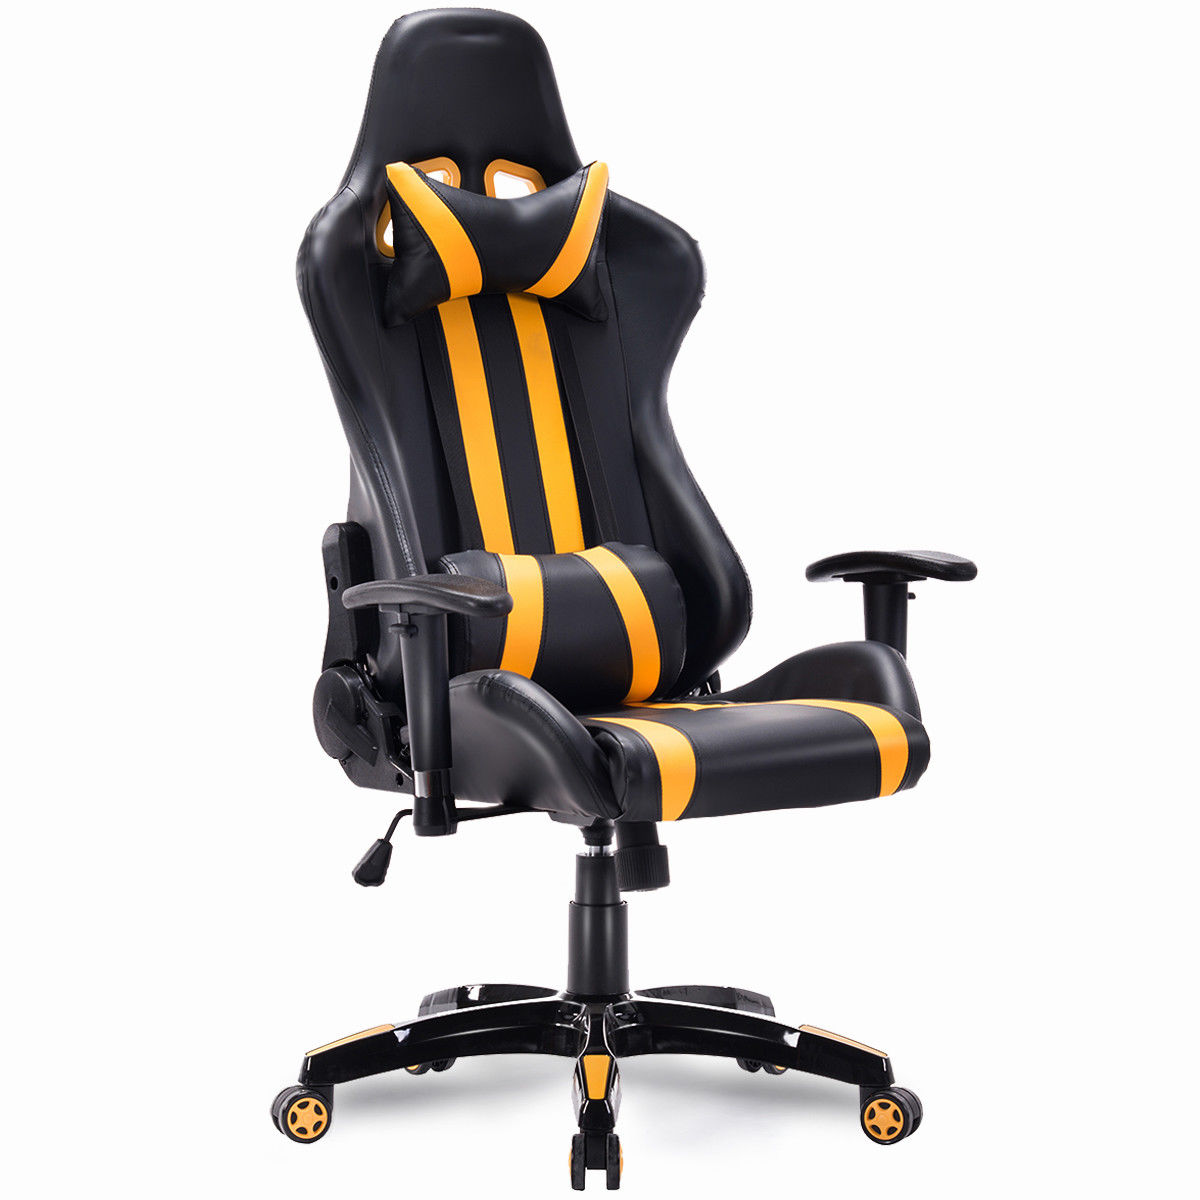 Office Recliner Chair India Casters Walmart Giantex High Back Executive Racing Style Gaming